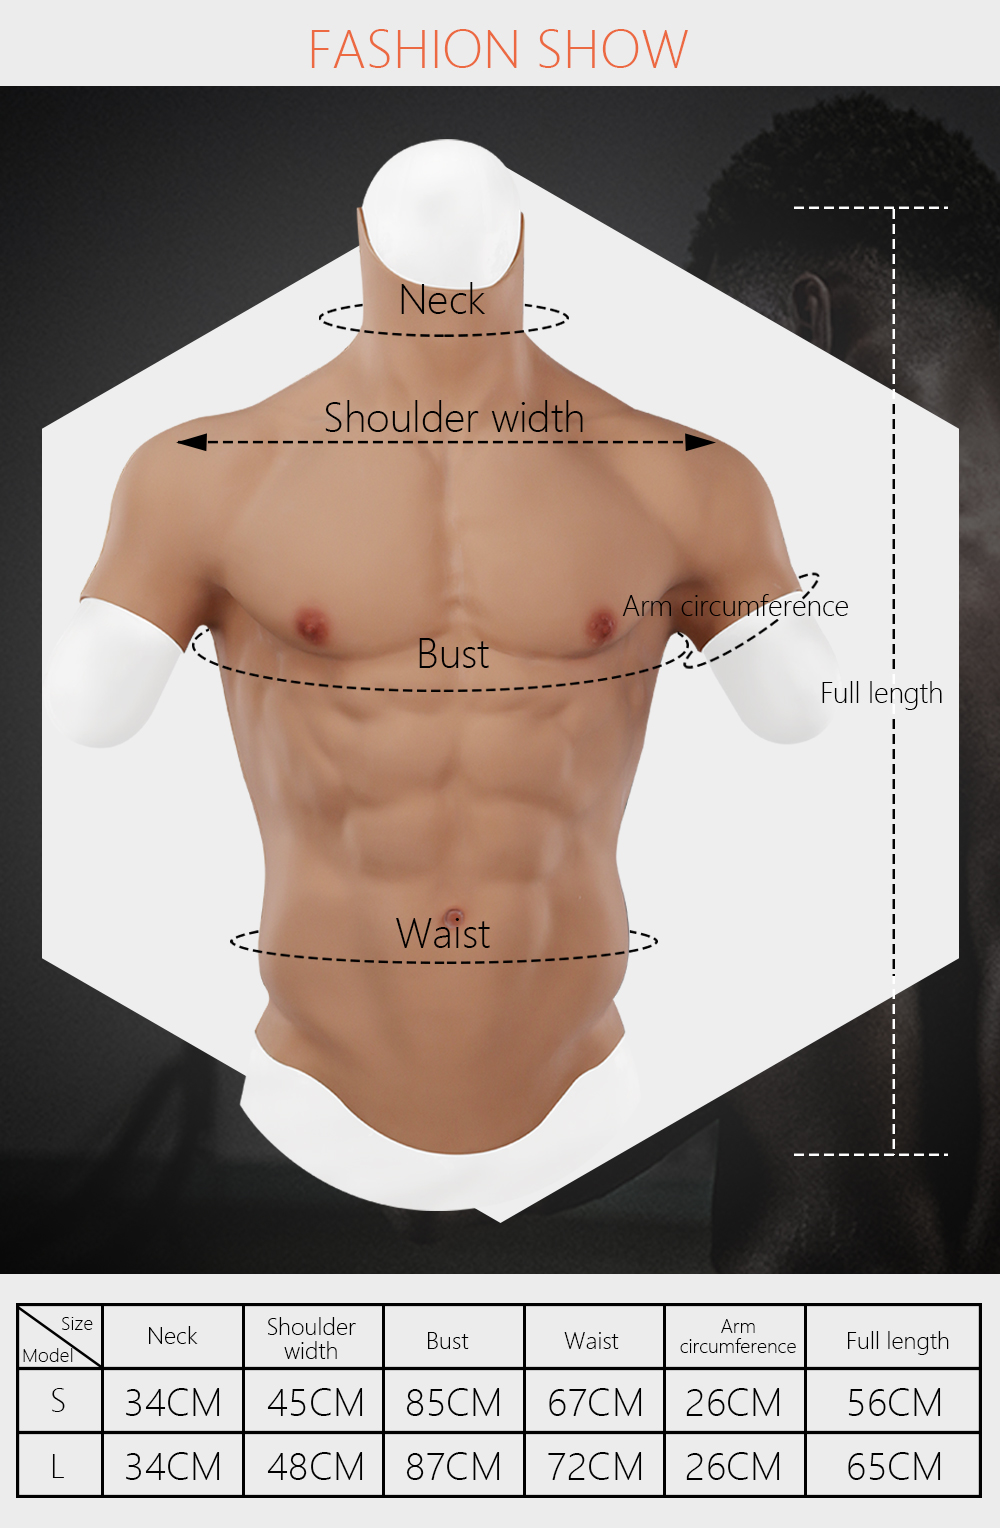 Eyung Silicone Male Muscle Suit Realistic false muscle Artificial fake Belly Man Skin Up Body Chest for Cosplayers Crossdresser  (2)